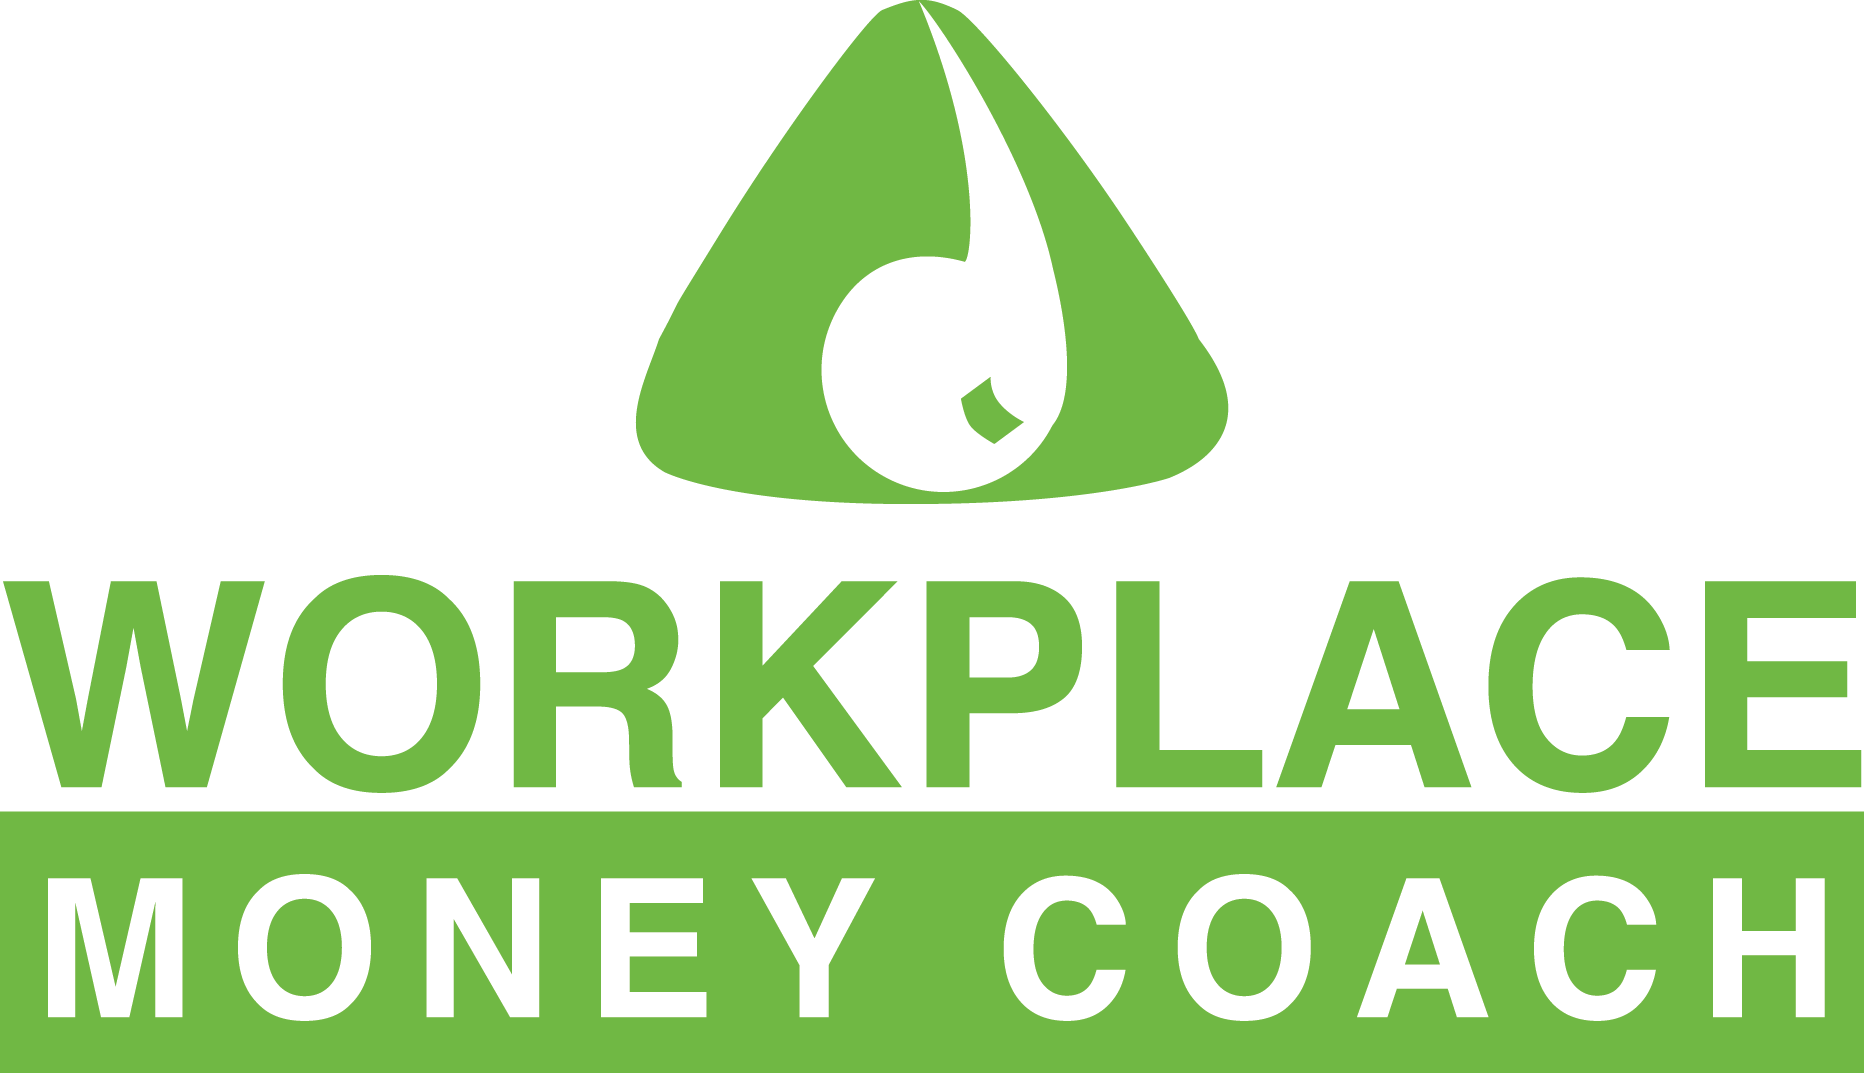 Workplace Money Coach